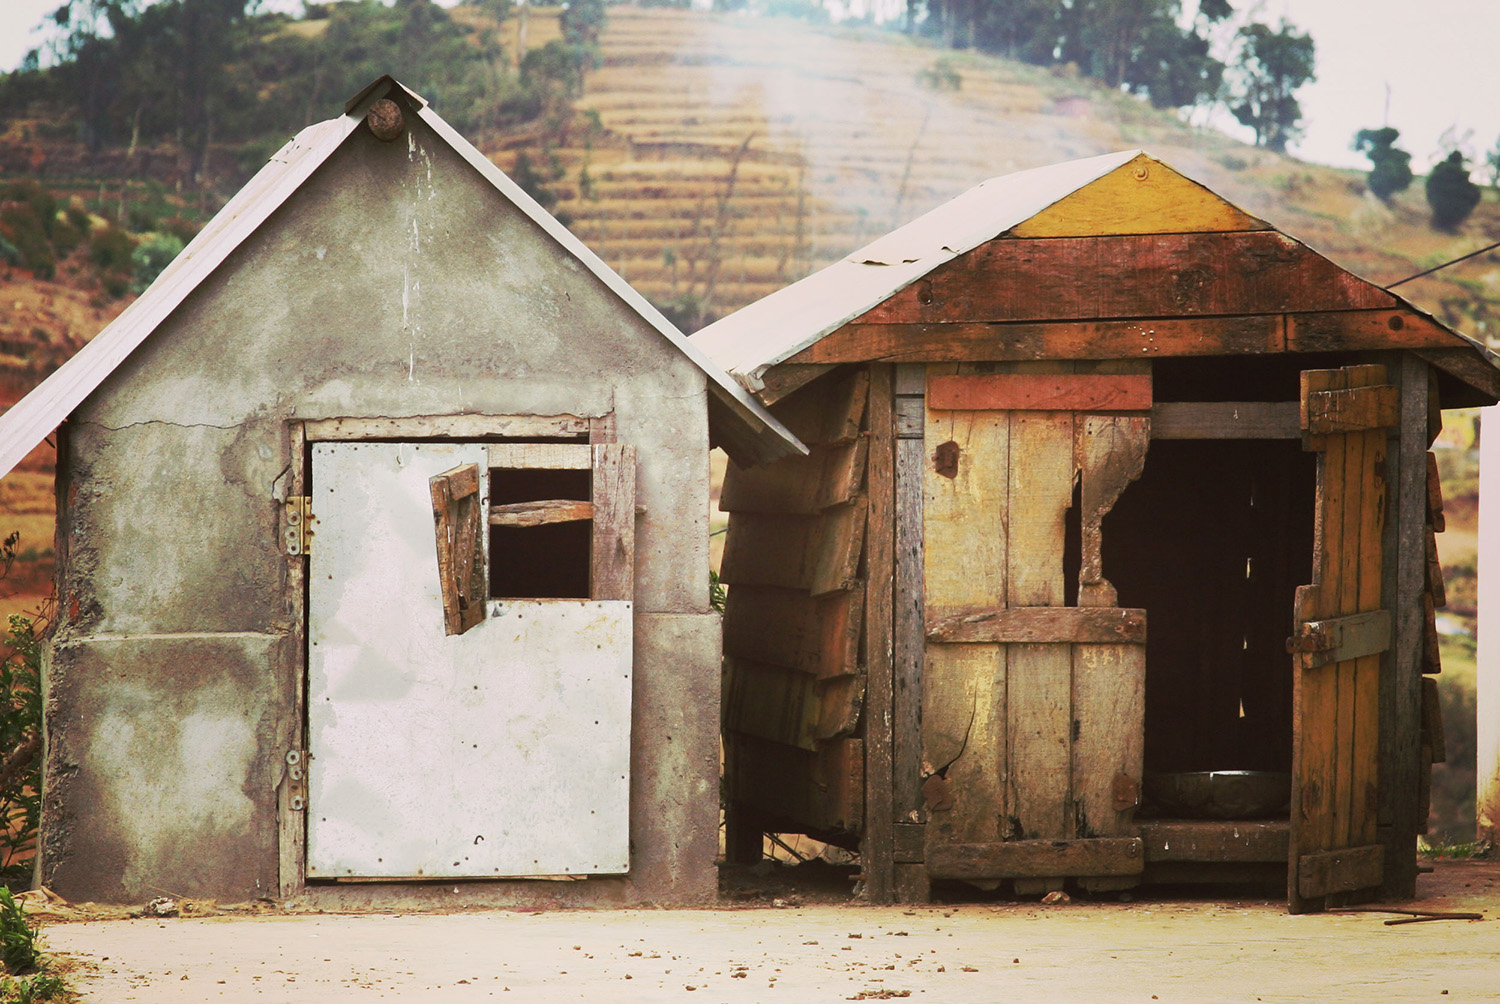 In The Doghouse, Ooty, India. Photo credit: babyelephant